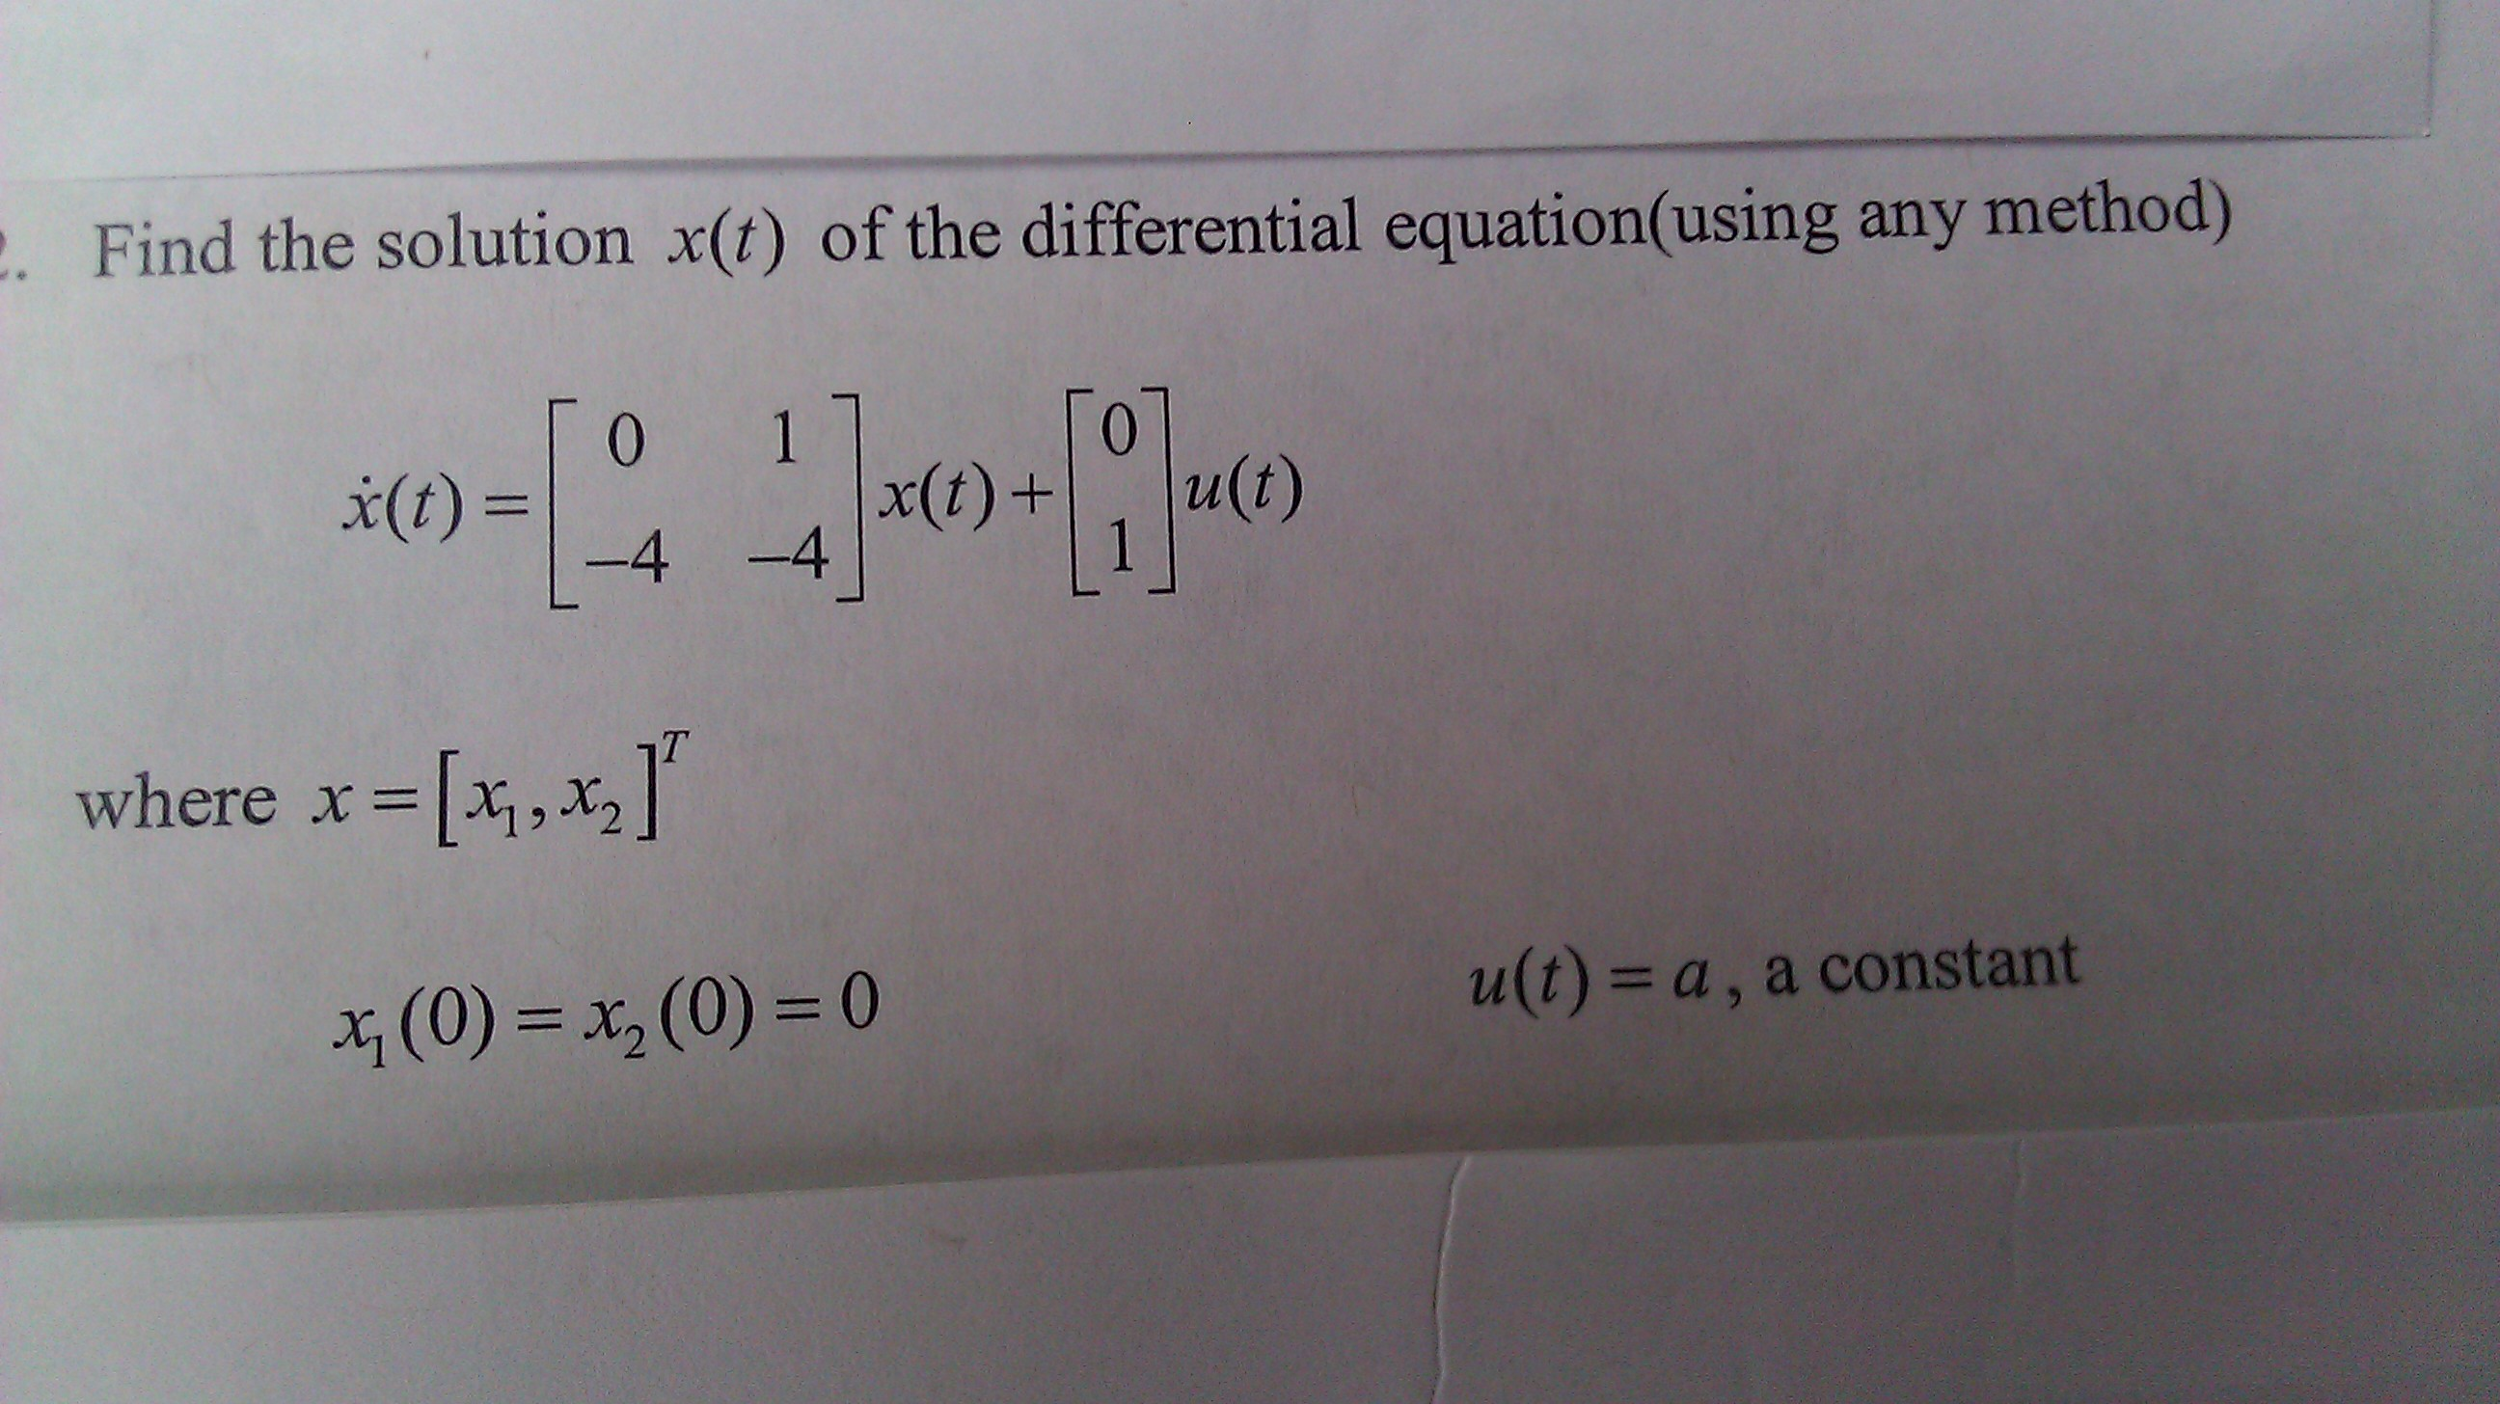 Find the solution x(t) of the differential equatio